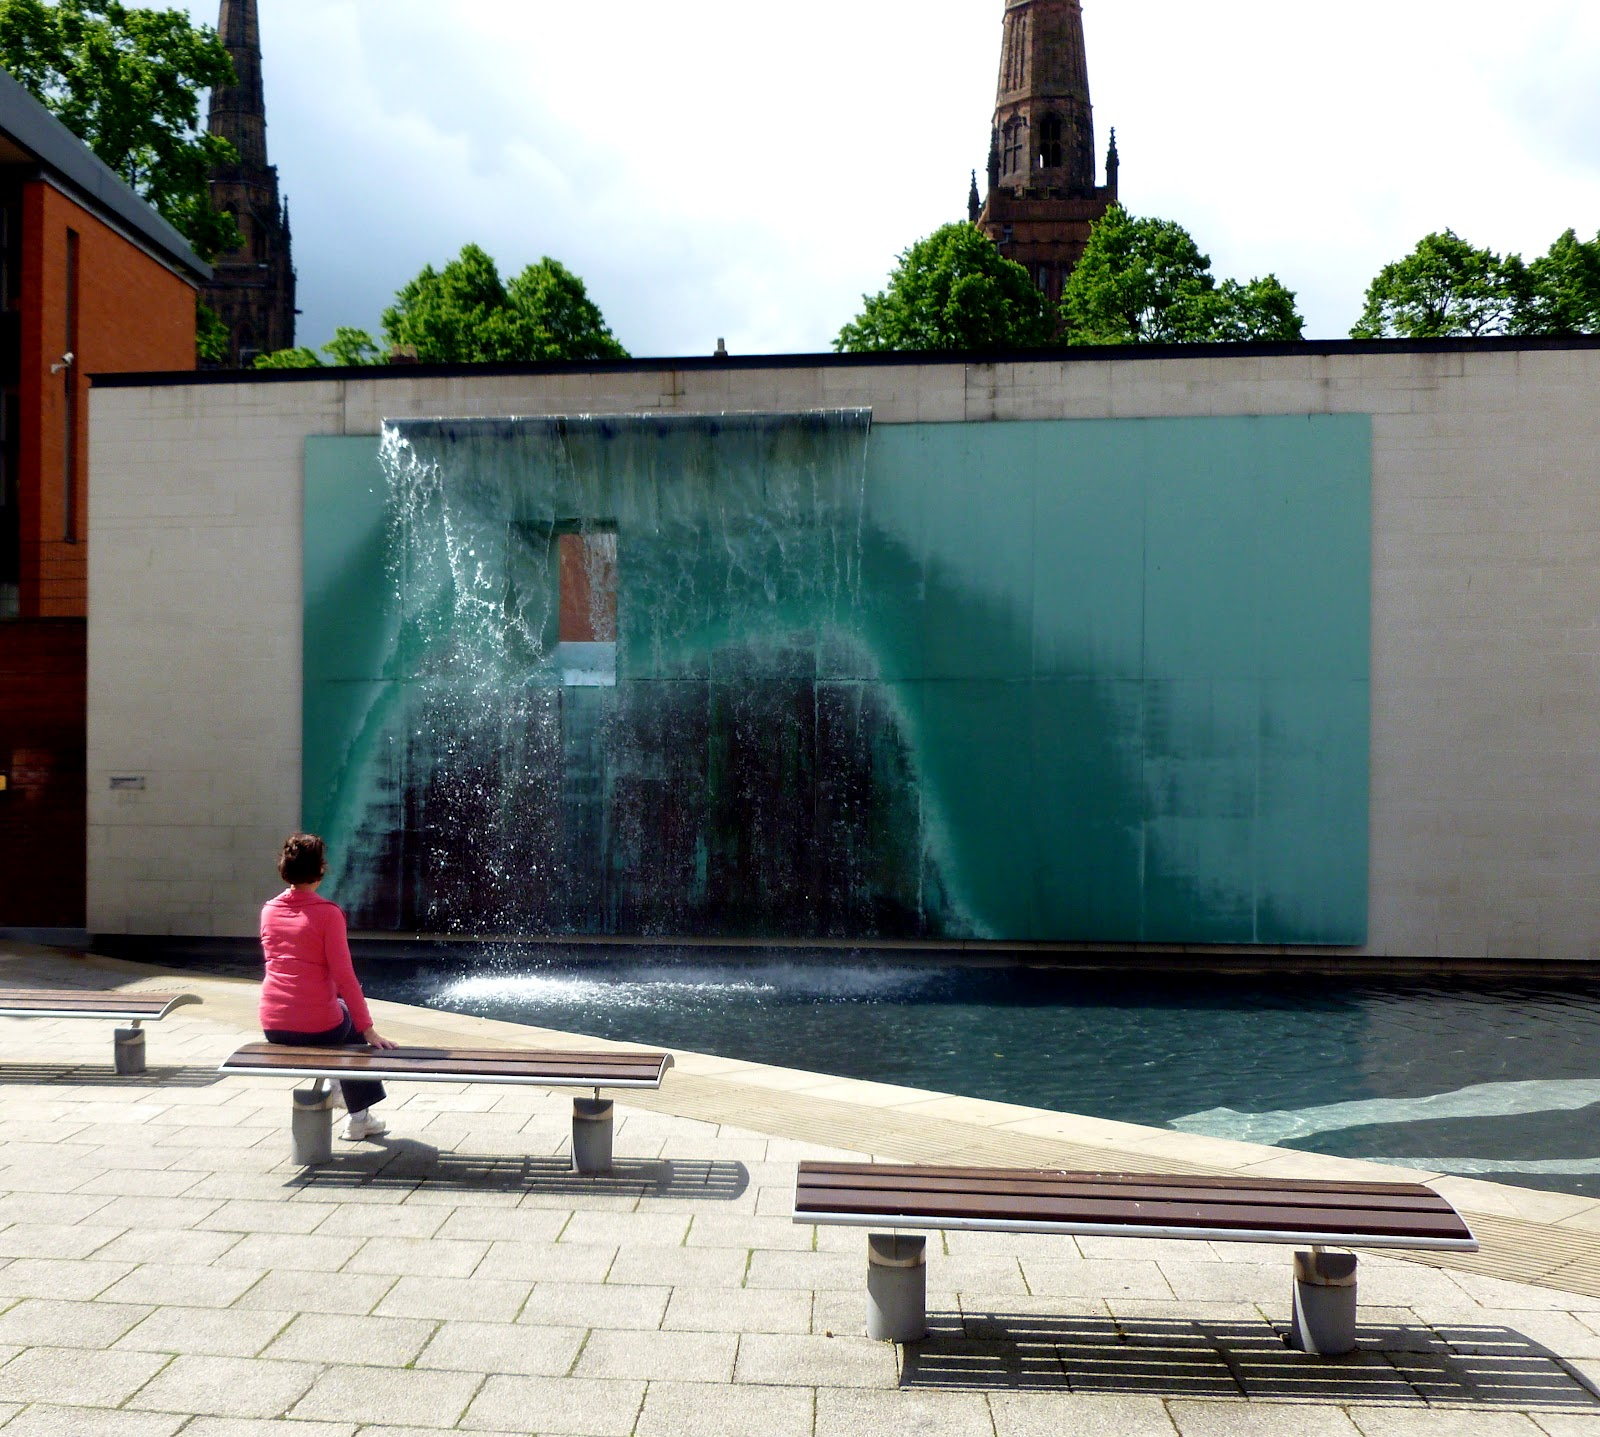 Places To Visit Coventry Uk: Today Around Coventry: June 2012